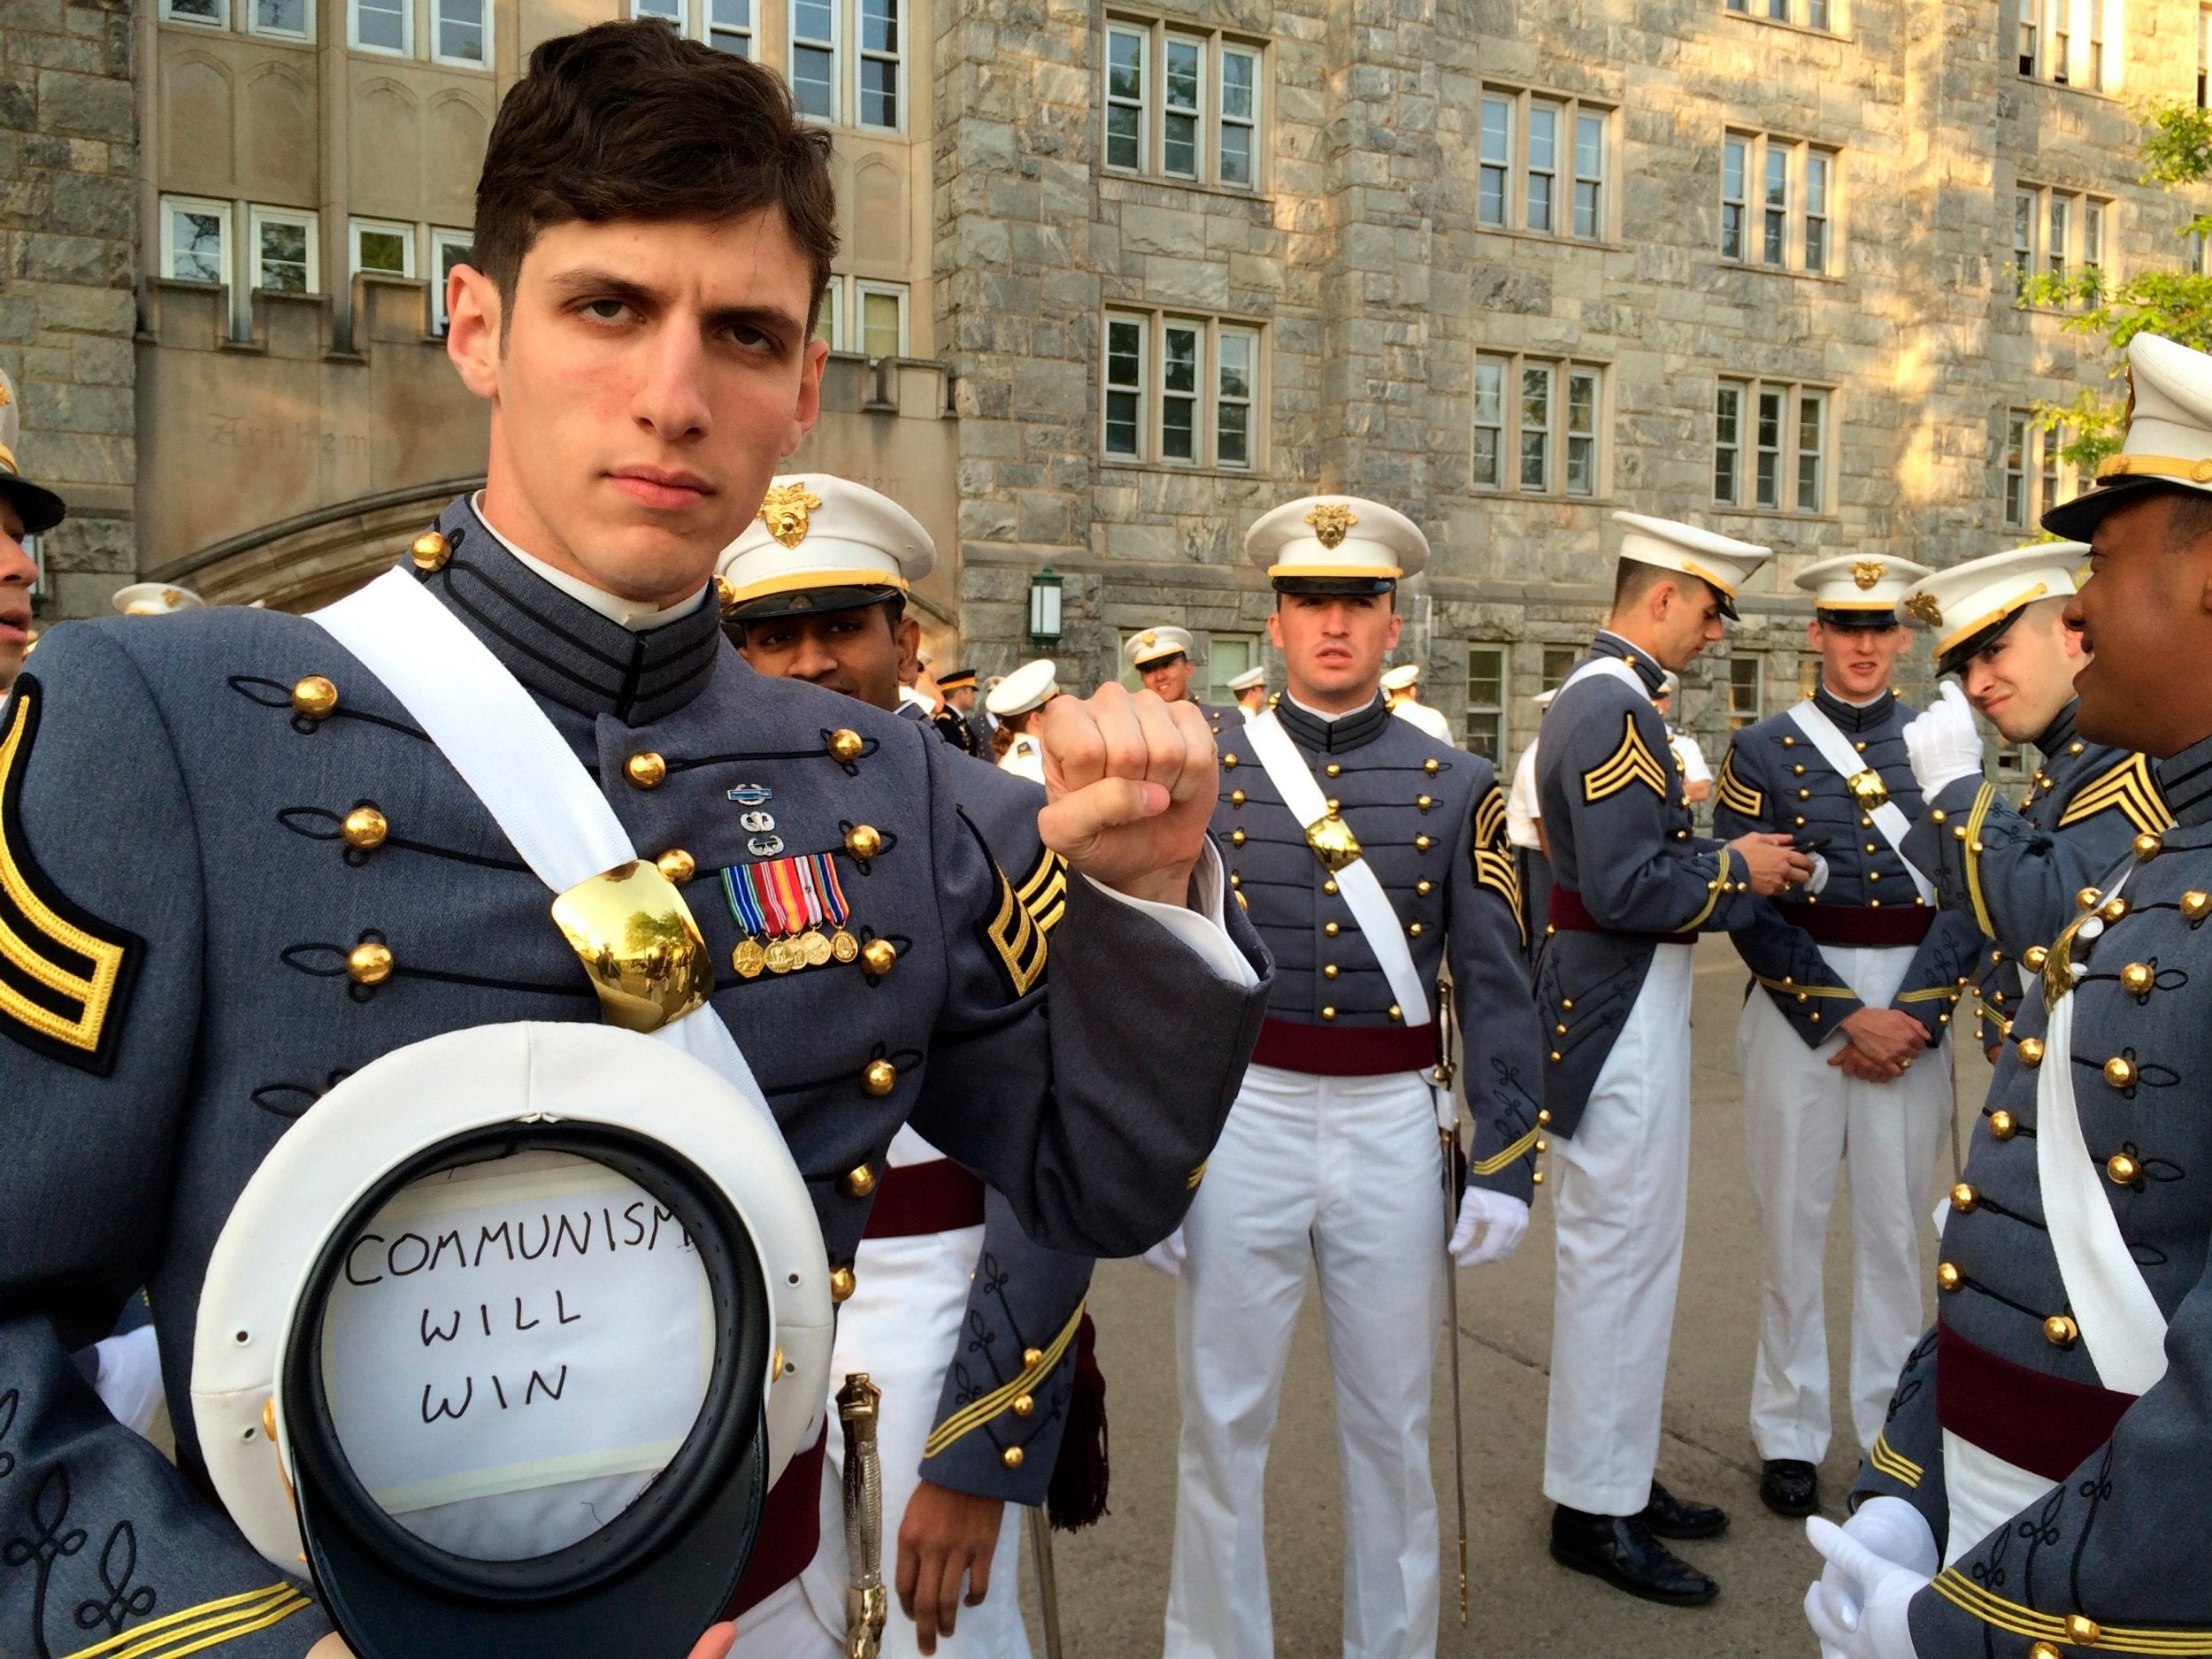 682cb9bf US soldier who said 'communism will win' and wore Che Guevara T-shirt to  graduation kicked out of army